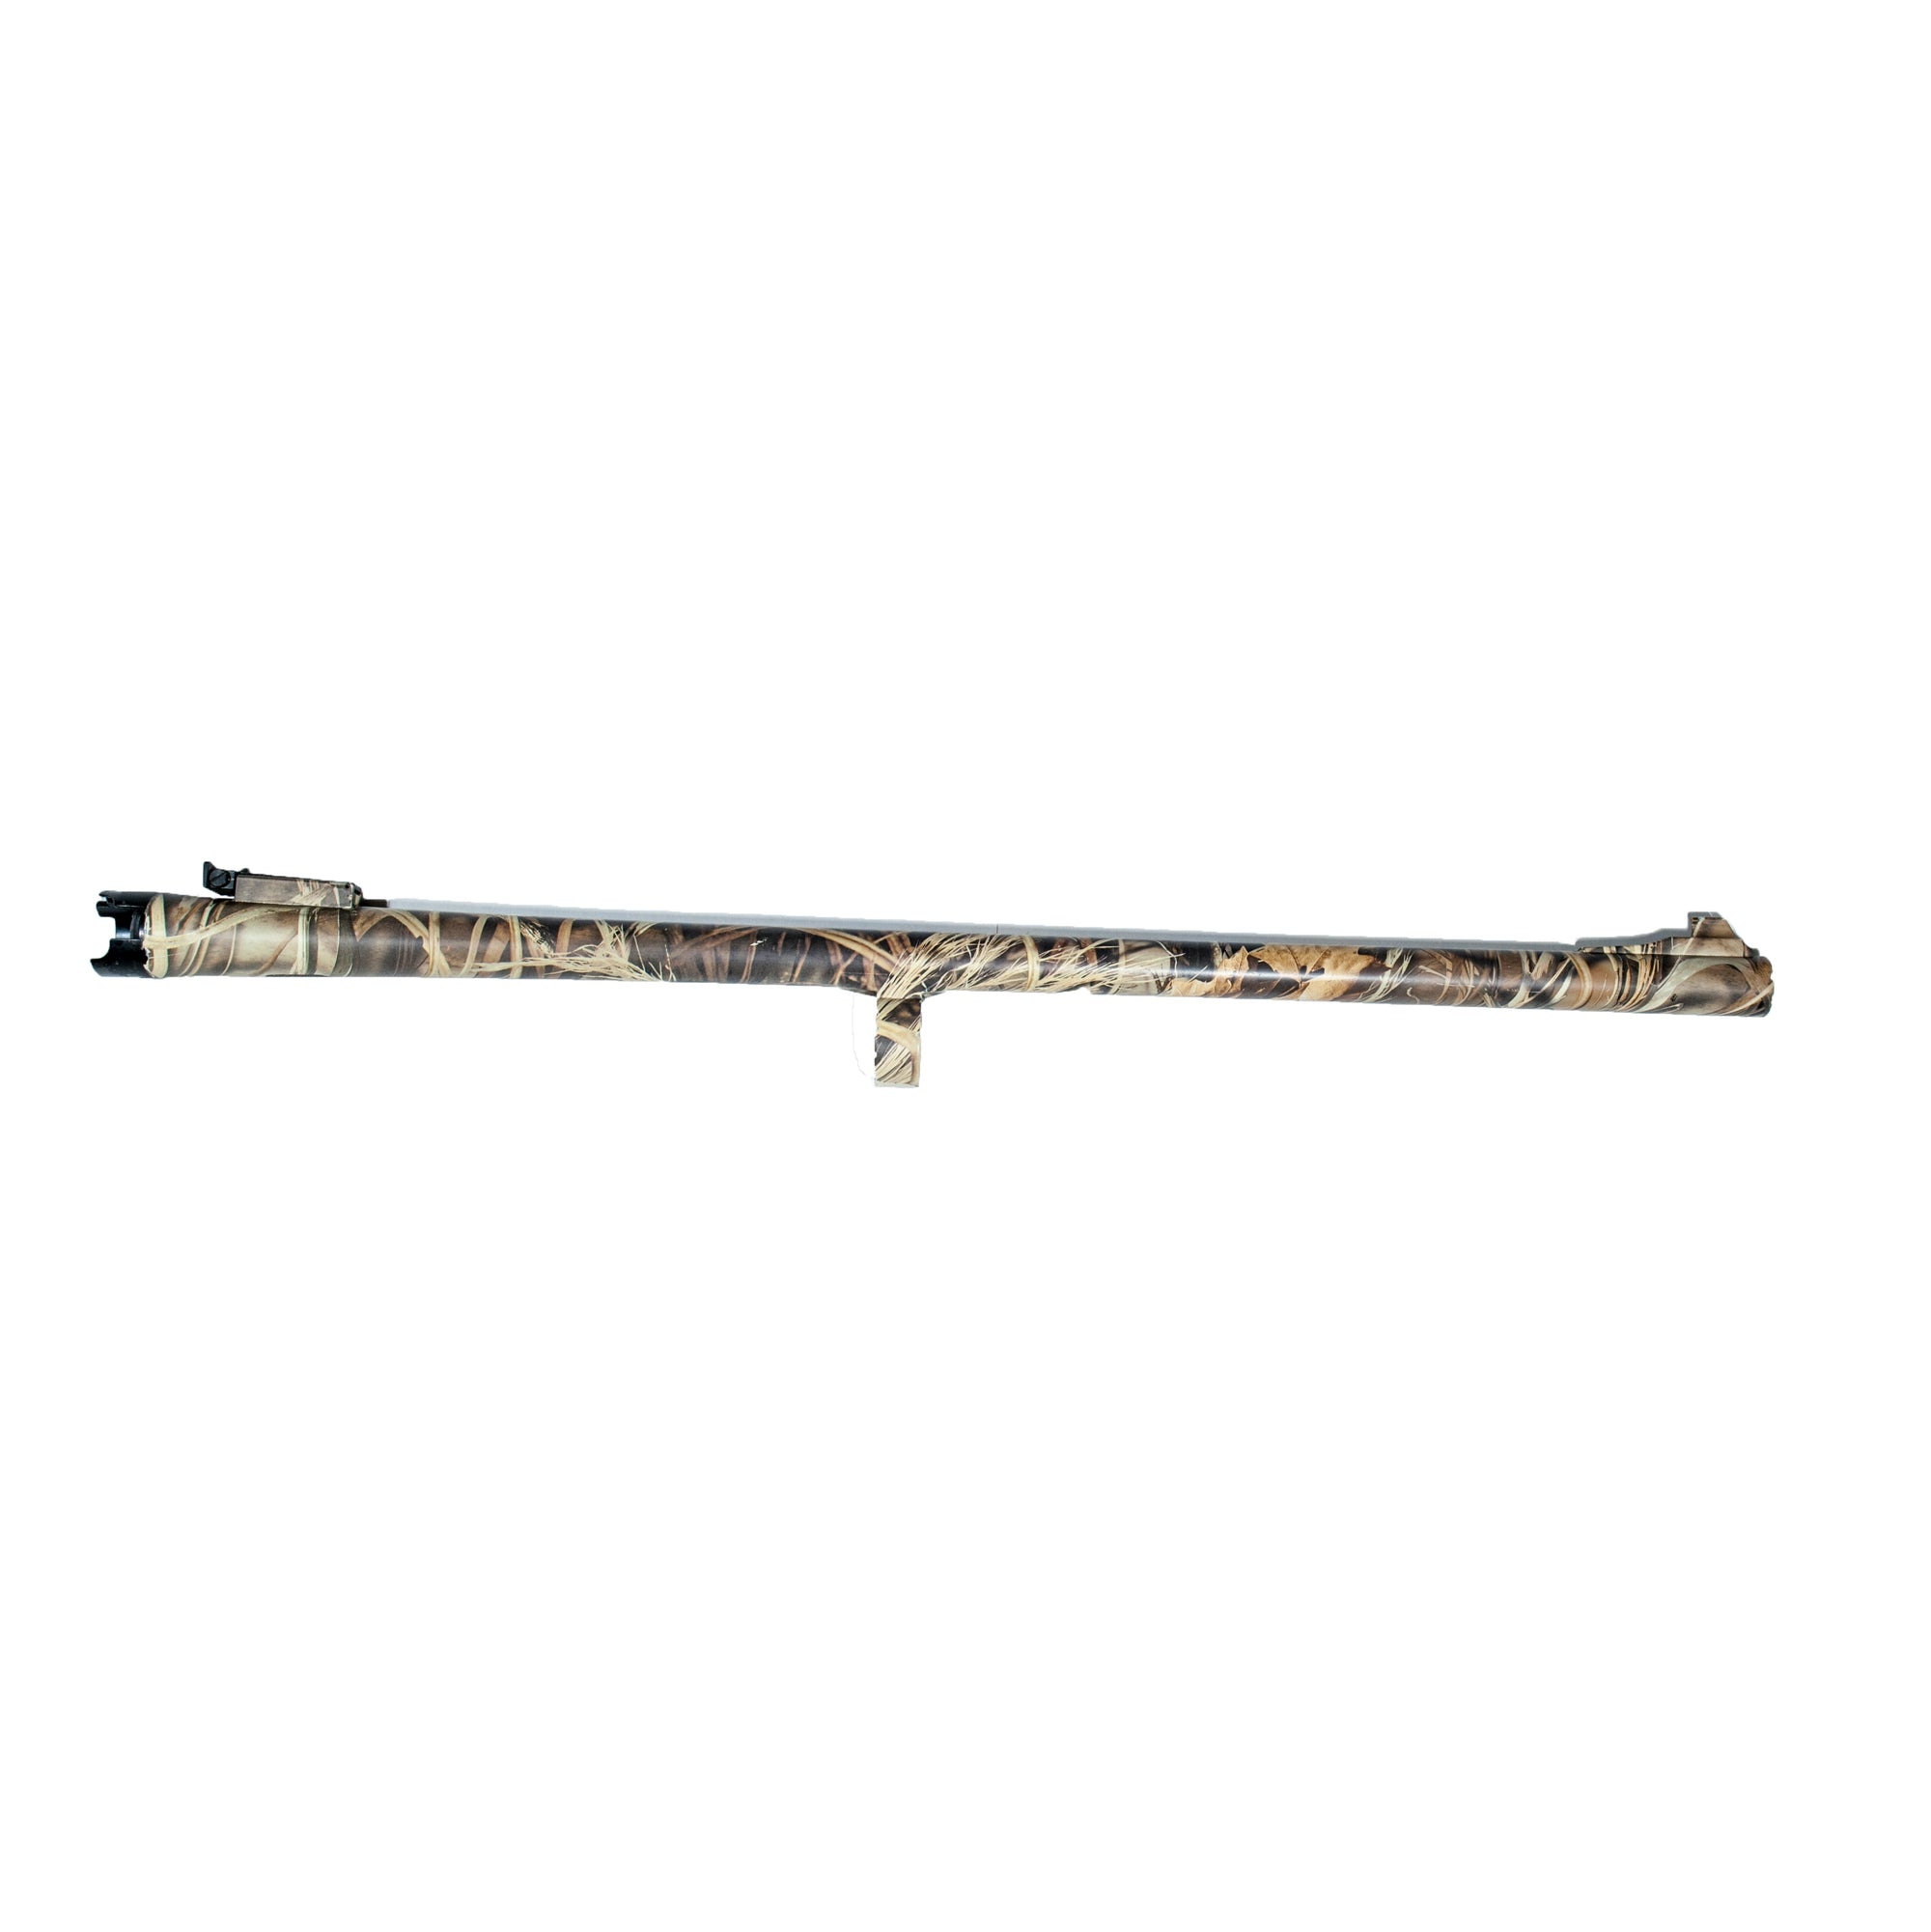 "Stoeger 2000 Camoflage 24"" M.C. Barrel only,Previously Owned Barrels- Canada Brass"